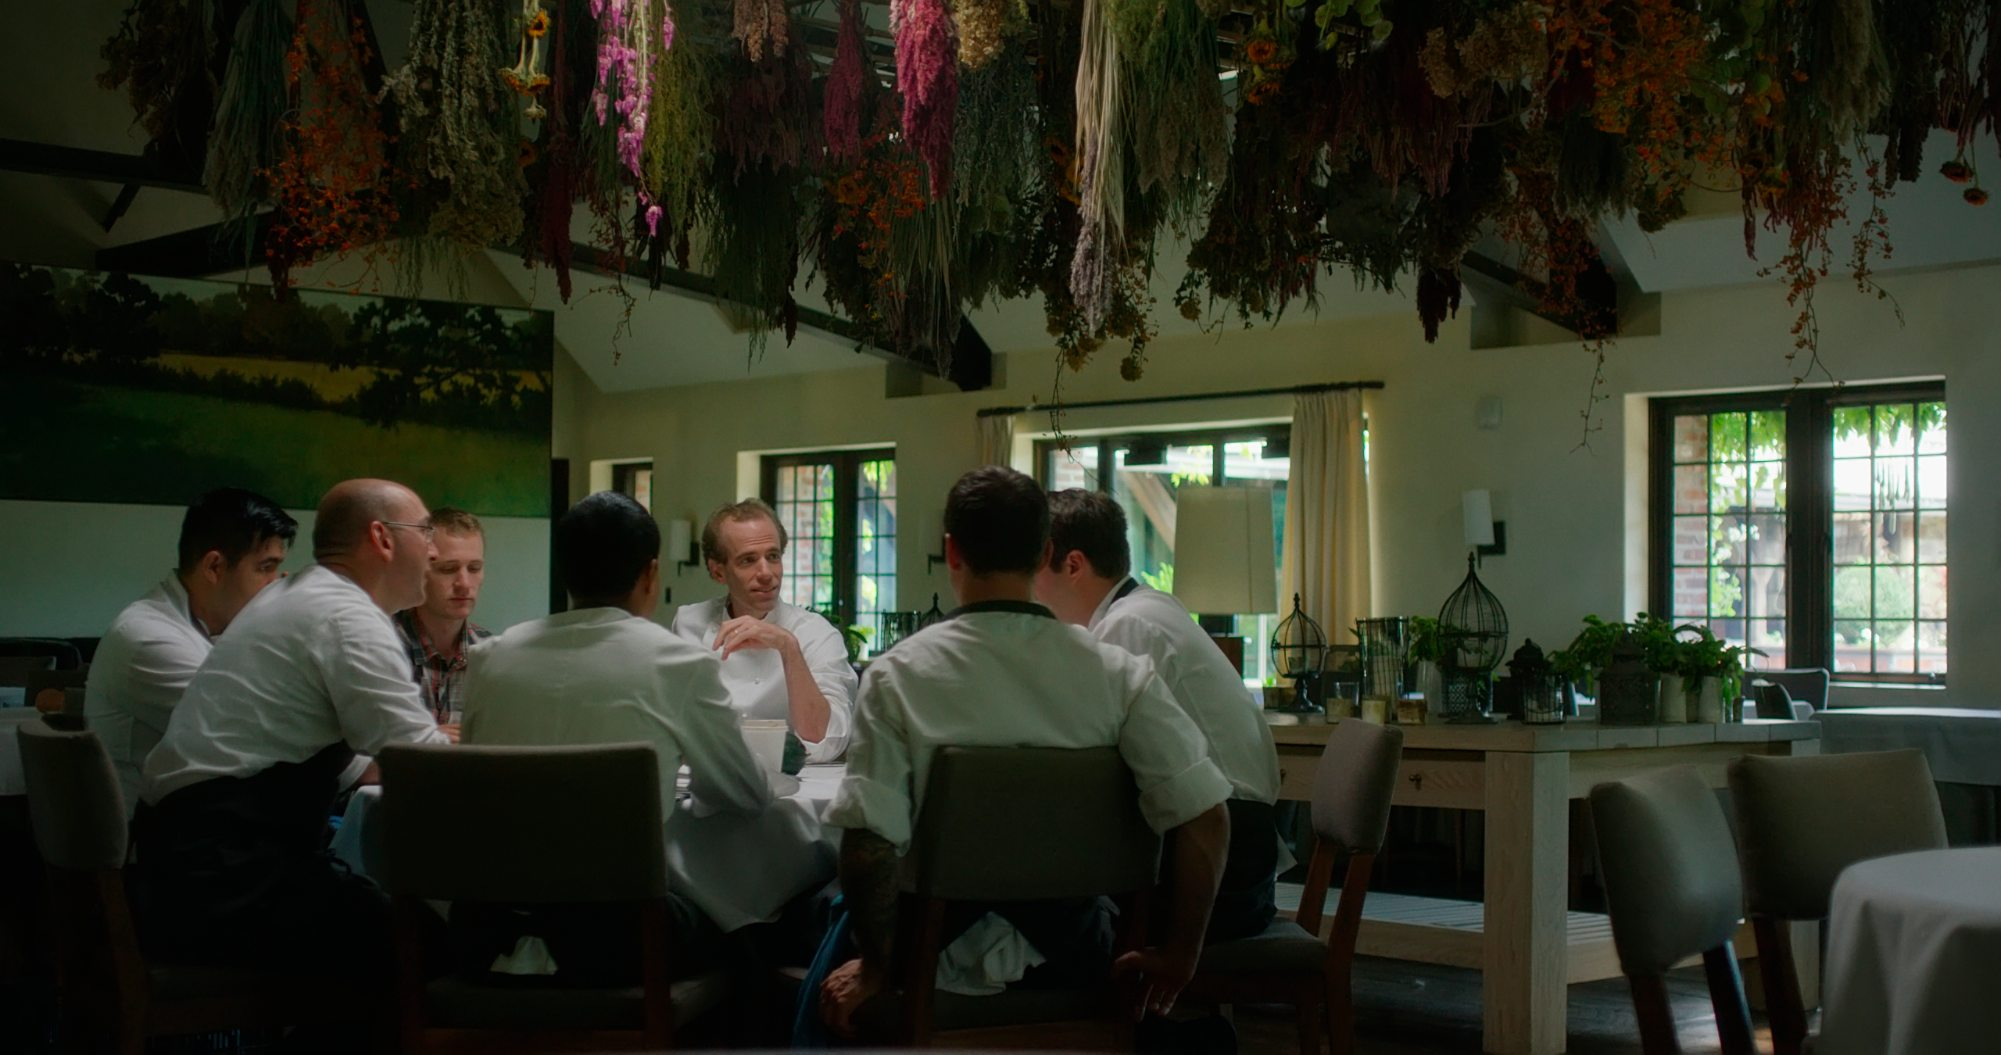 Review: How 'Chef's Table' Exposes the Gap Between Intent and Reality